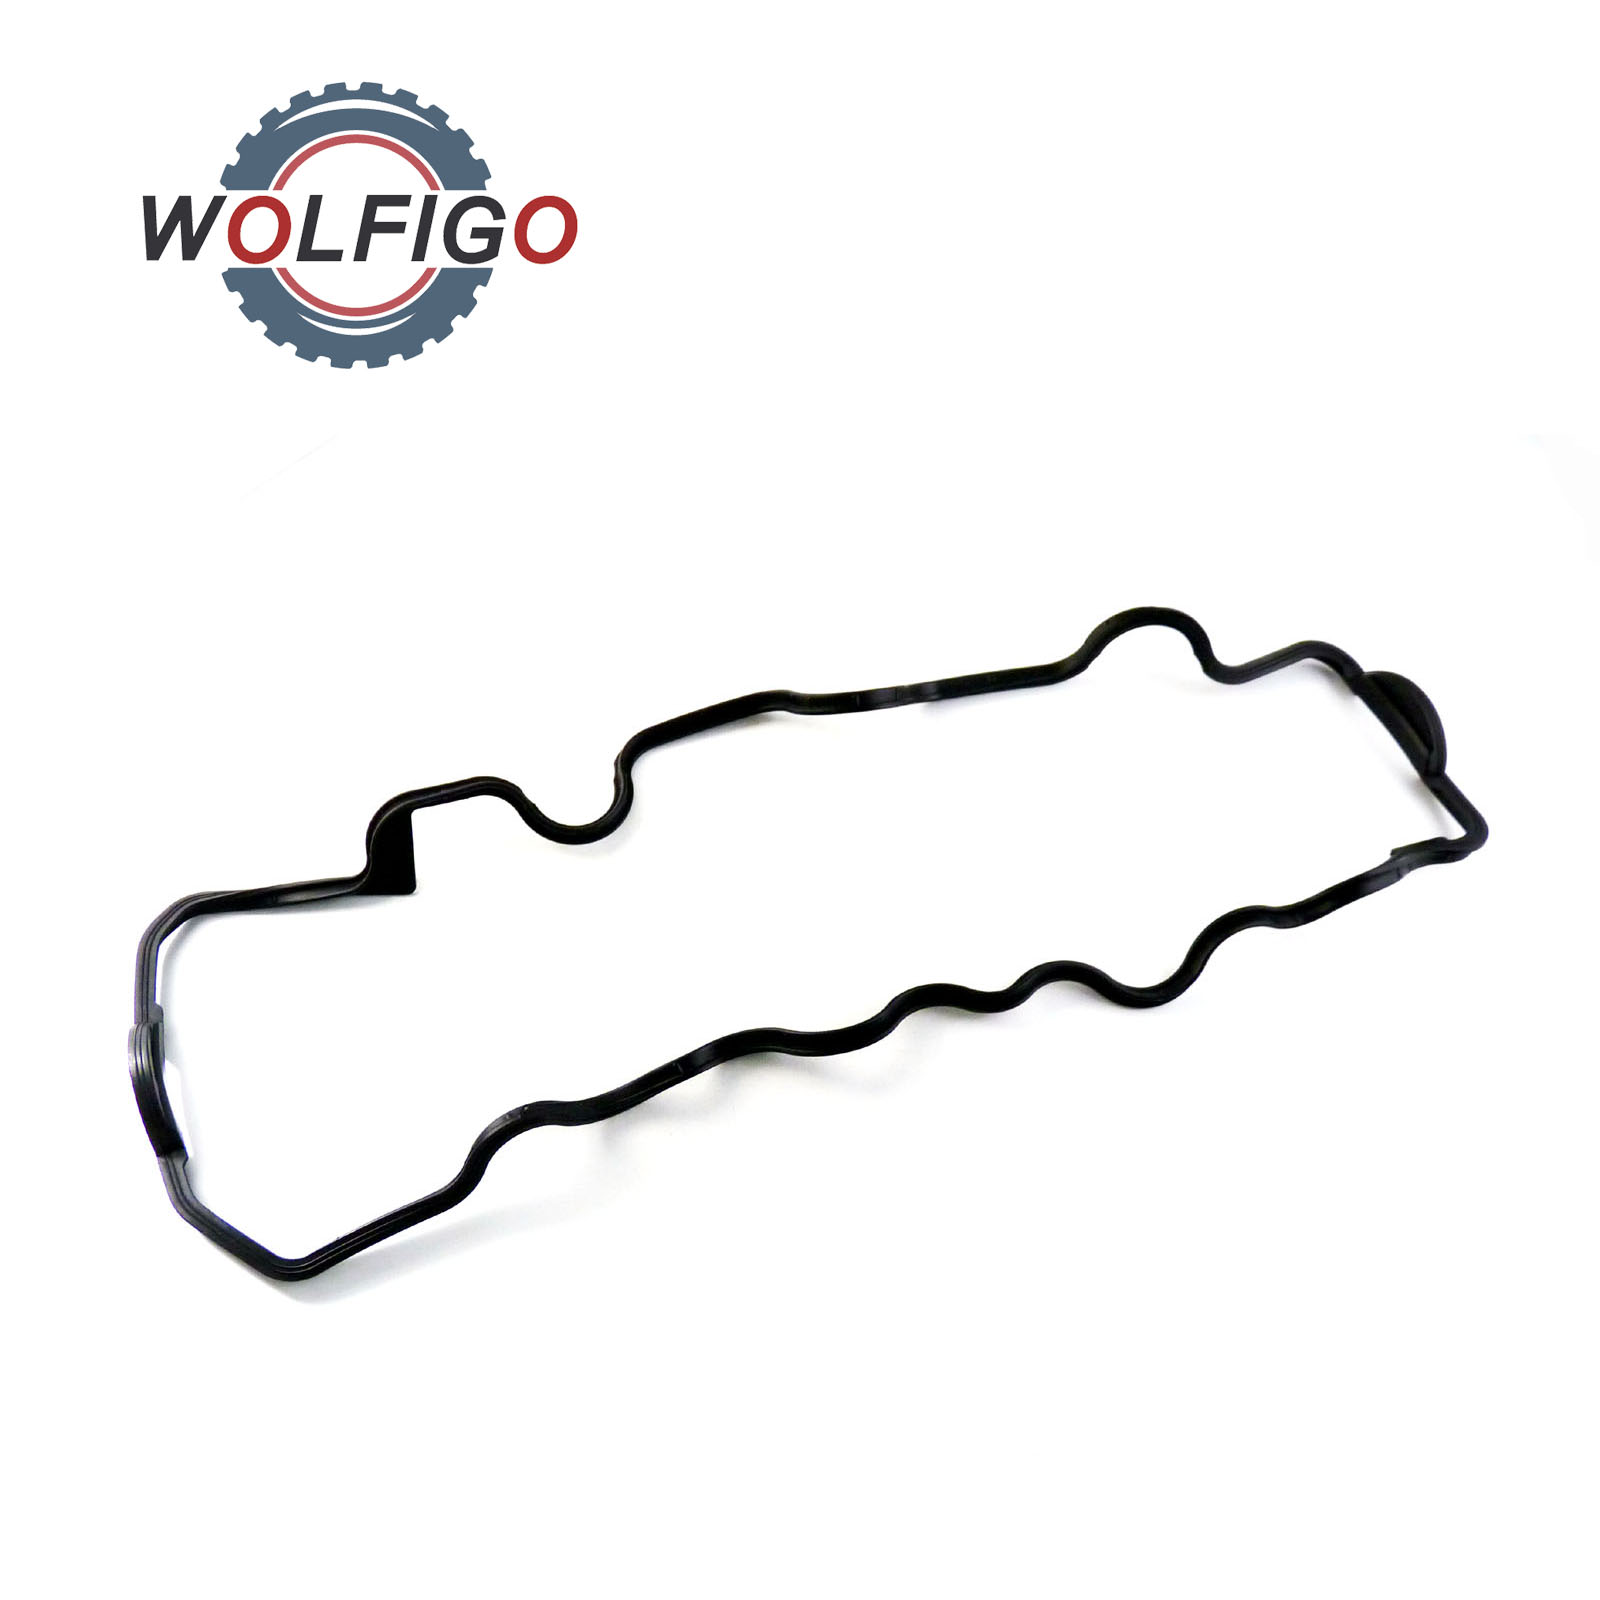 Wolfigo For Mercedes Benz W202 W210 W211 W220 W163 Left